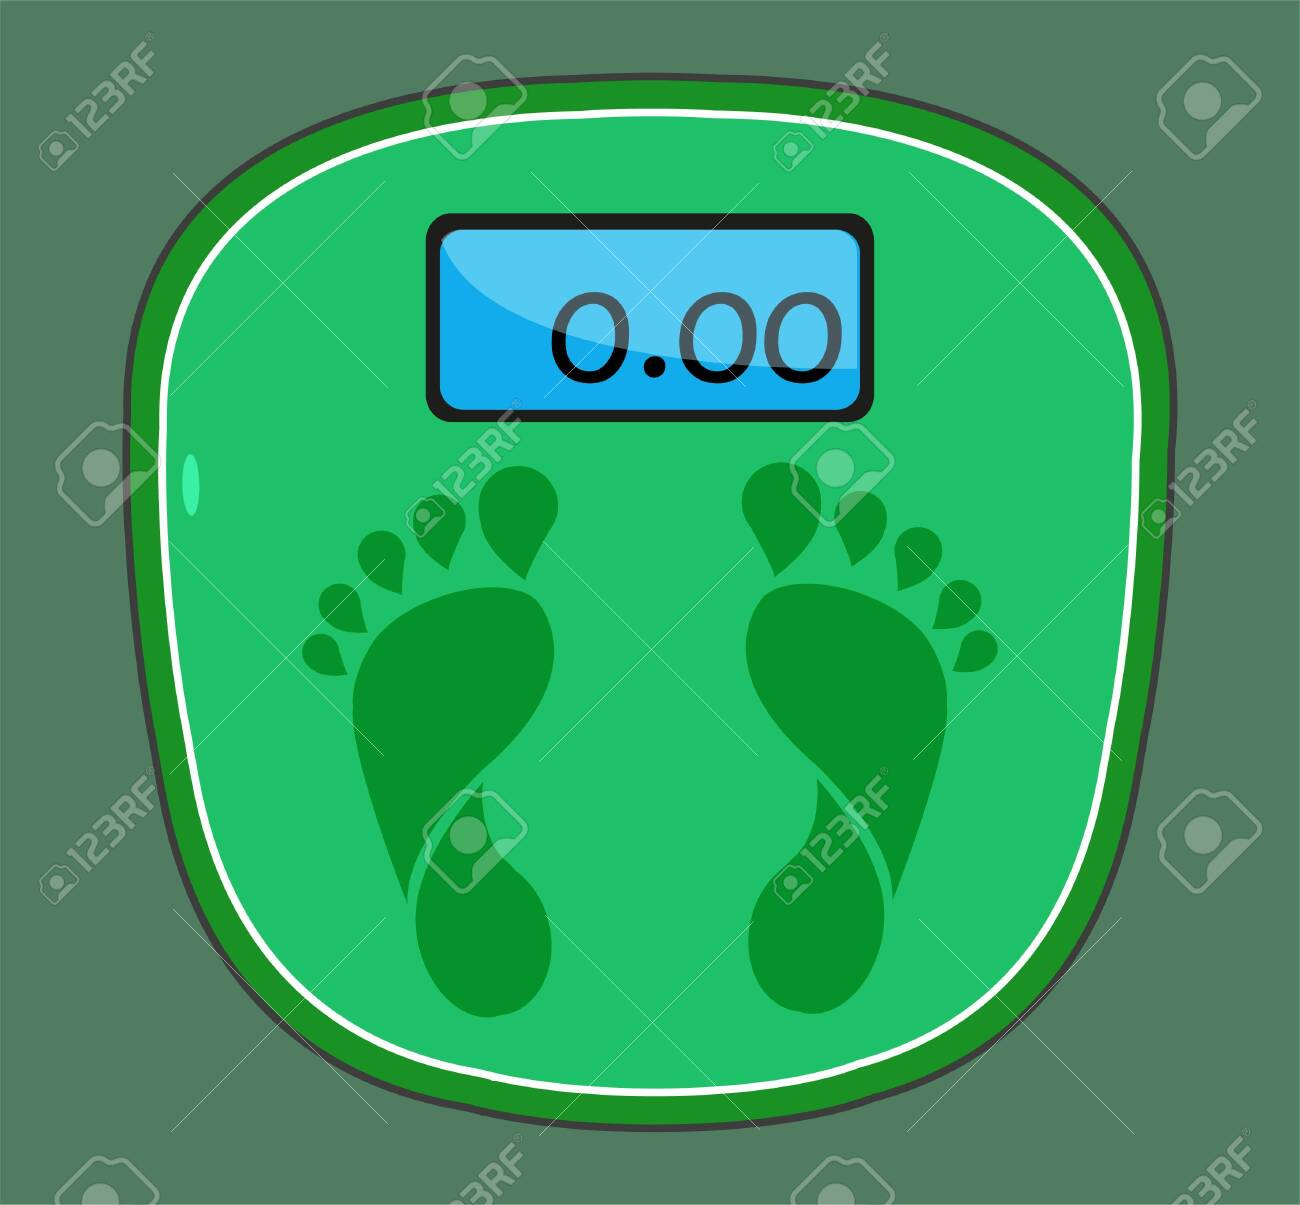 Weight scale foot icon. Scales icon isolated on green background. Vector illustration EPS 10 - 146542911